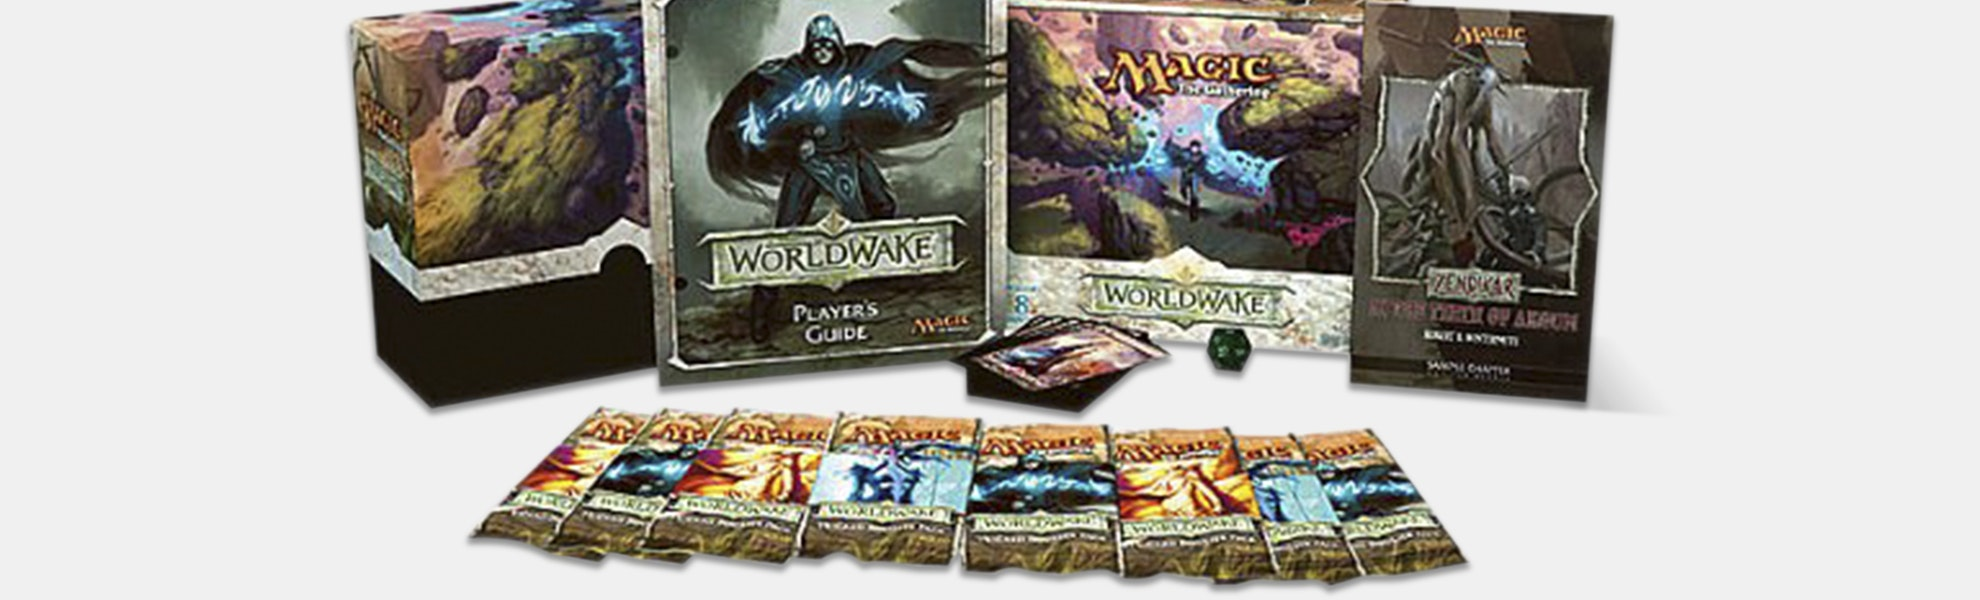 Worldwake Fat Pack